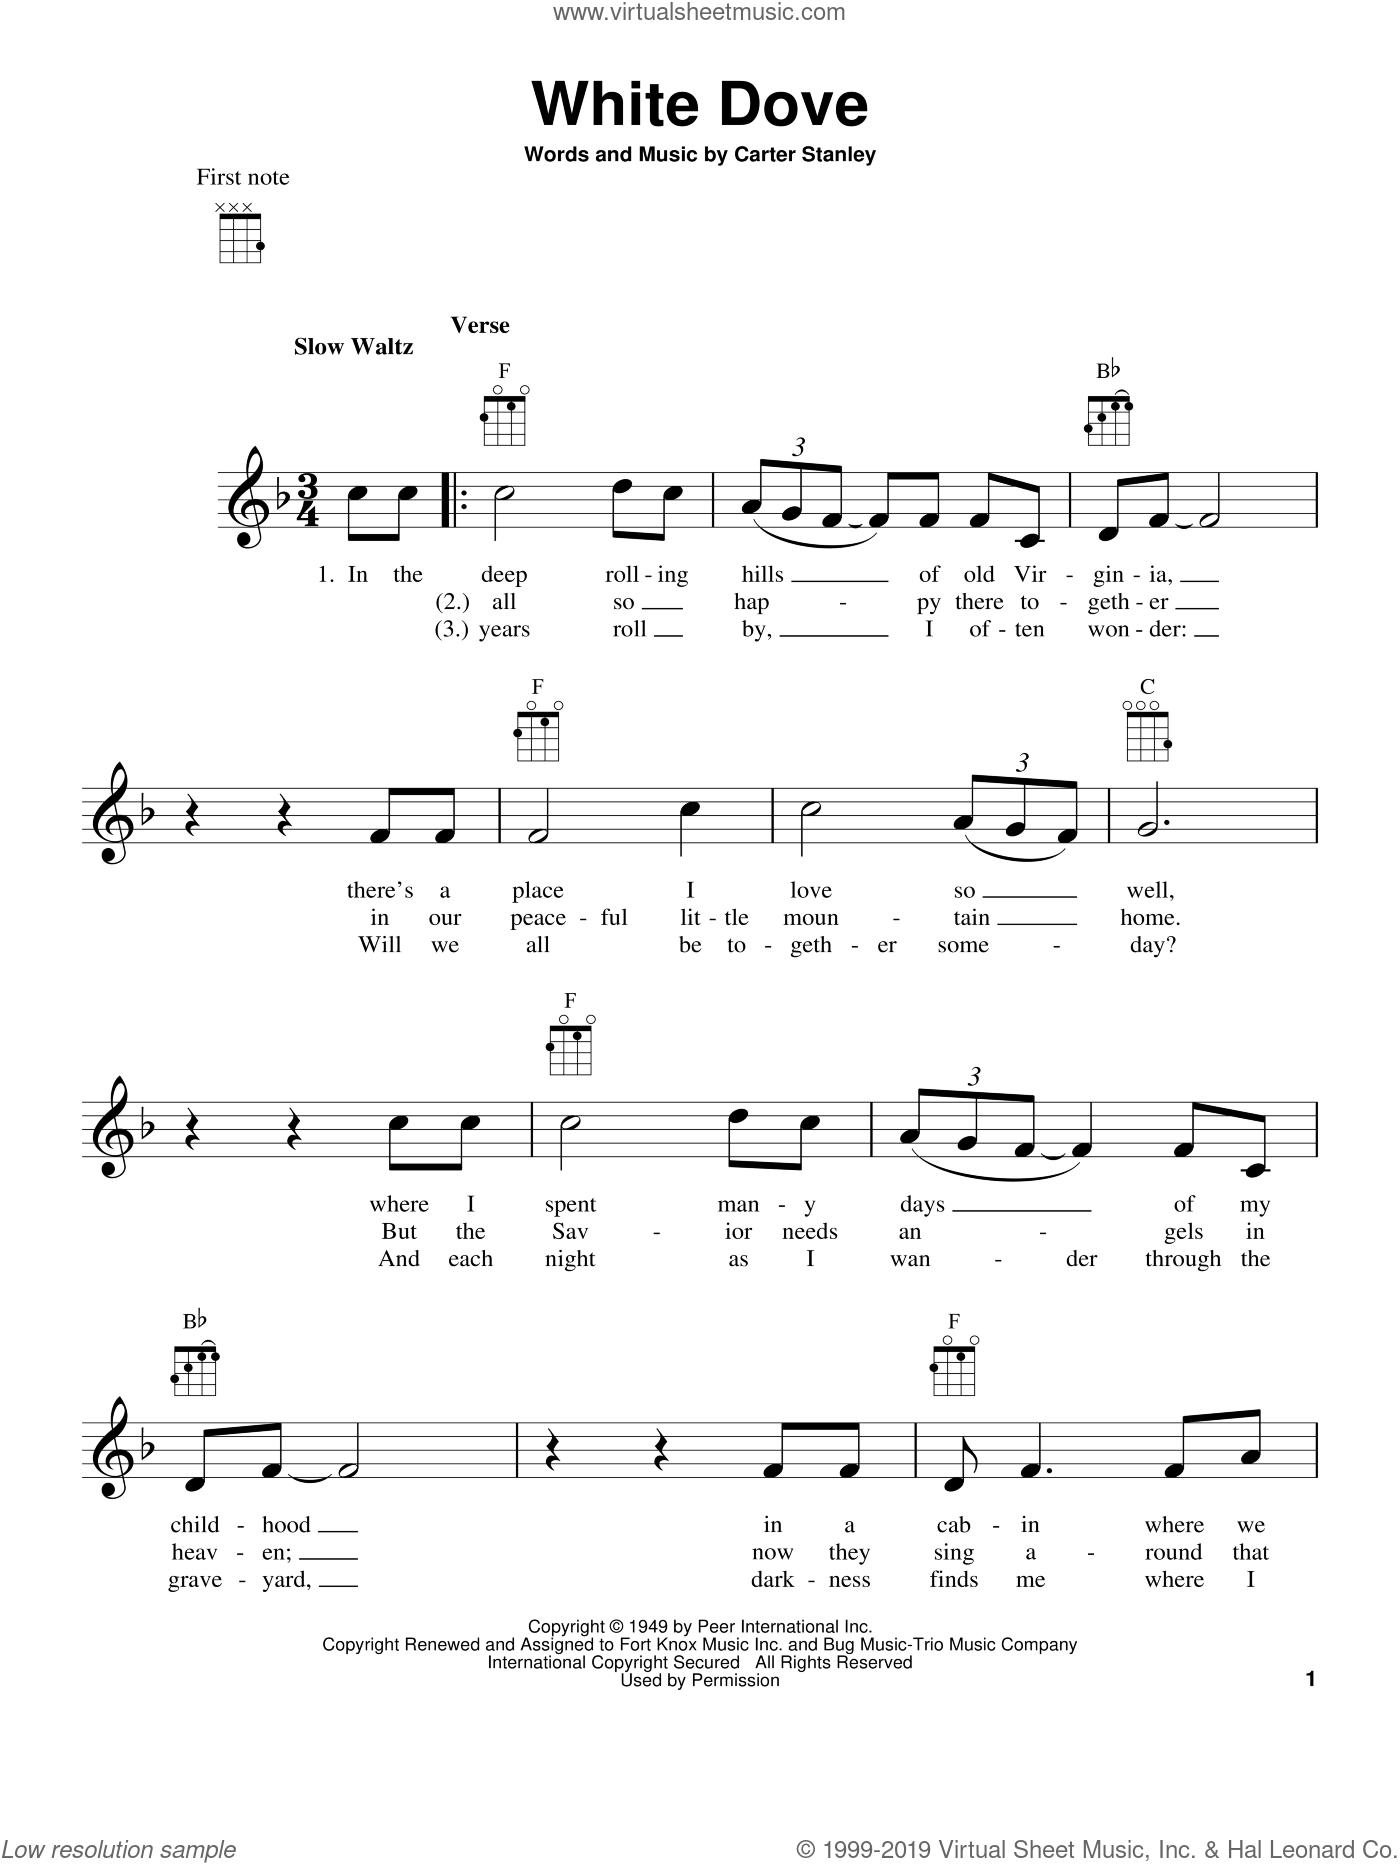 White Dove sheet music for ukulele by Carter Stanley